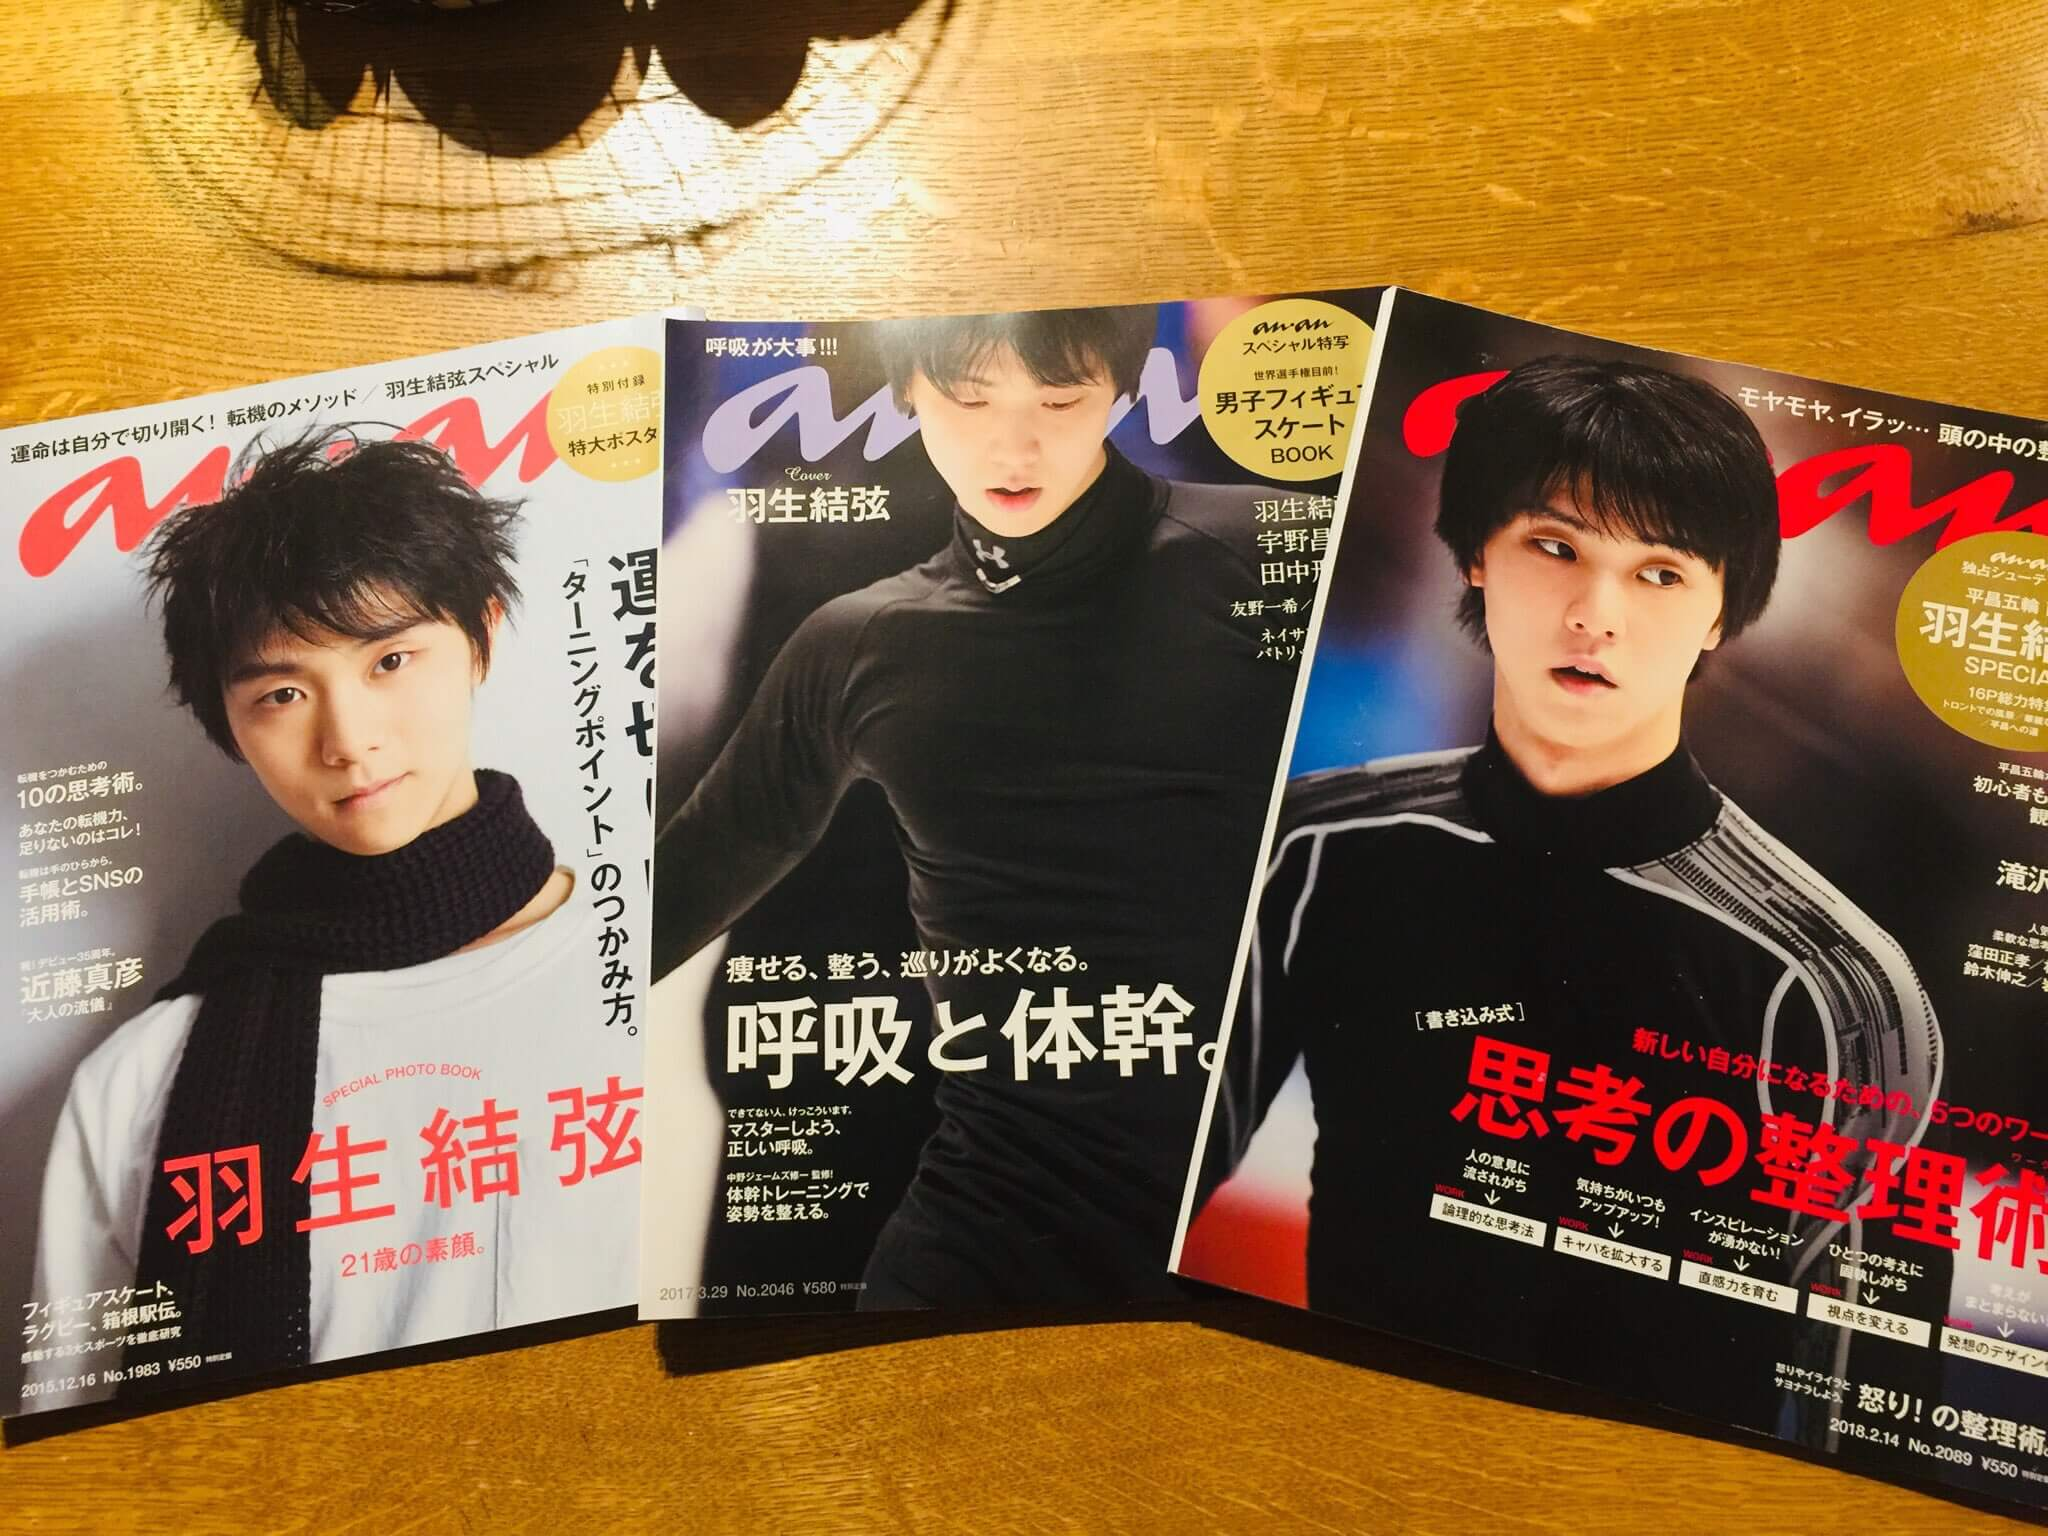 anan「羽生結弦Special 16P総力取材」キター!! 発売は1/23!!